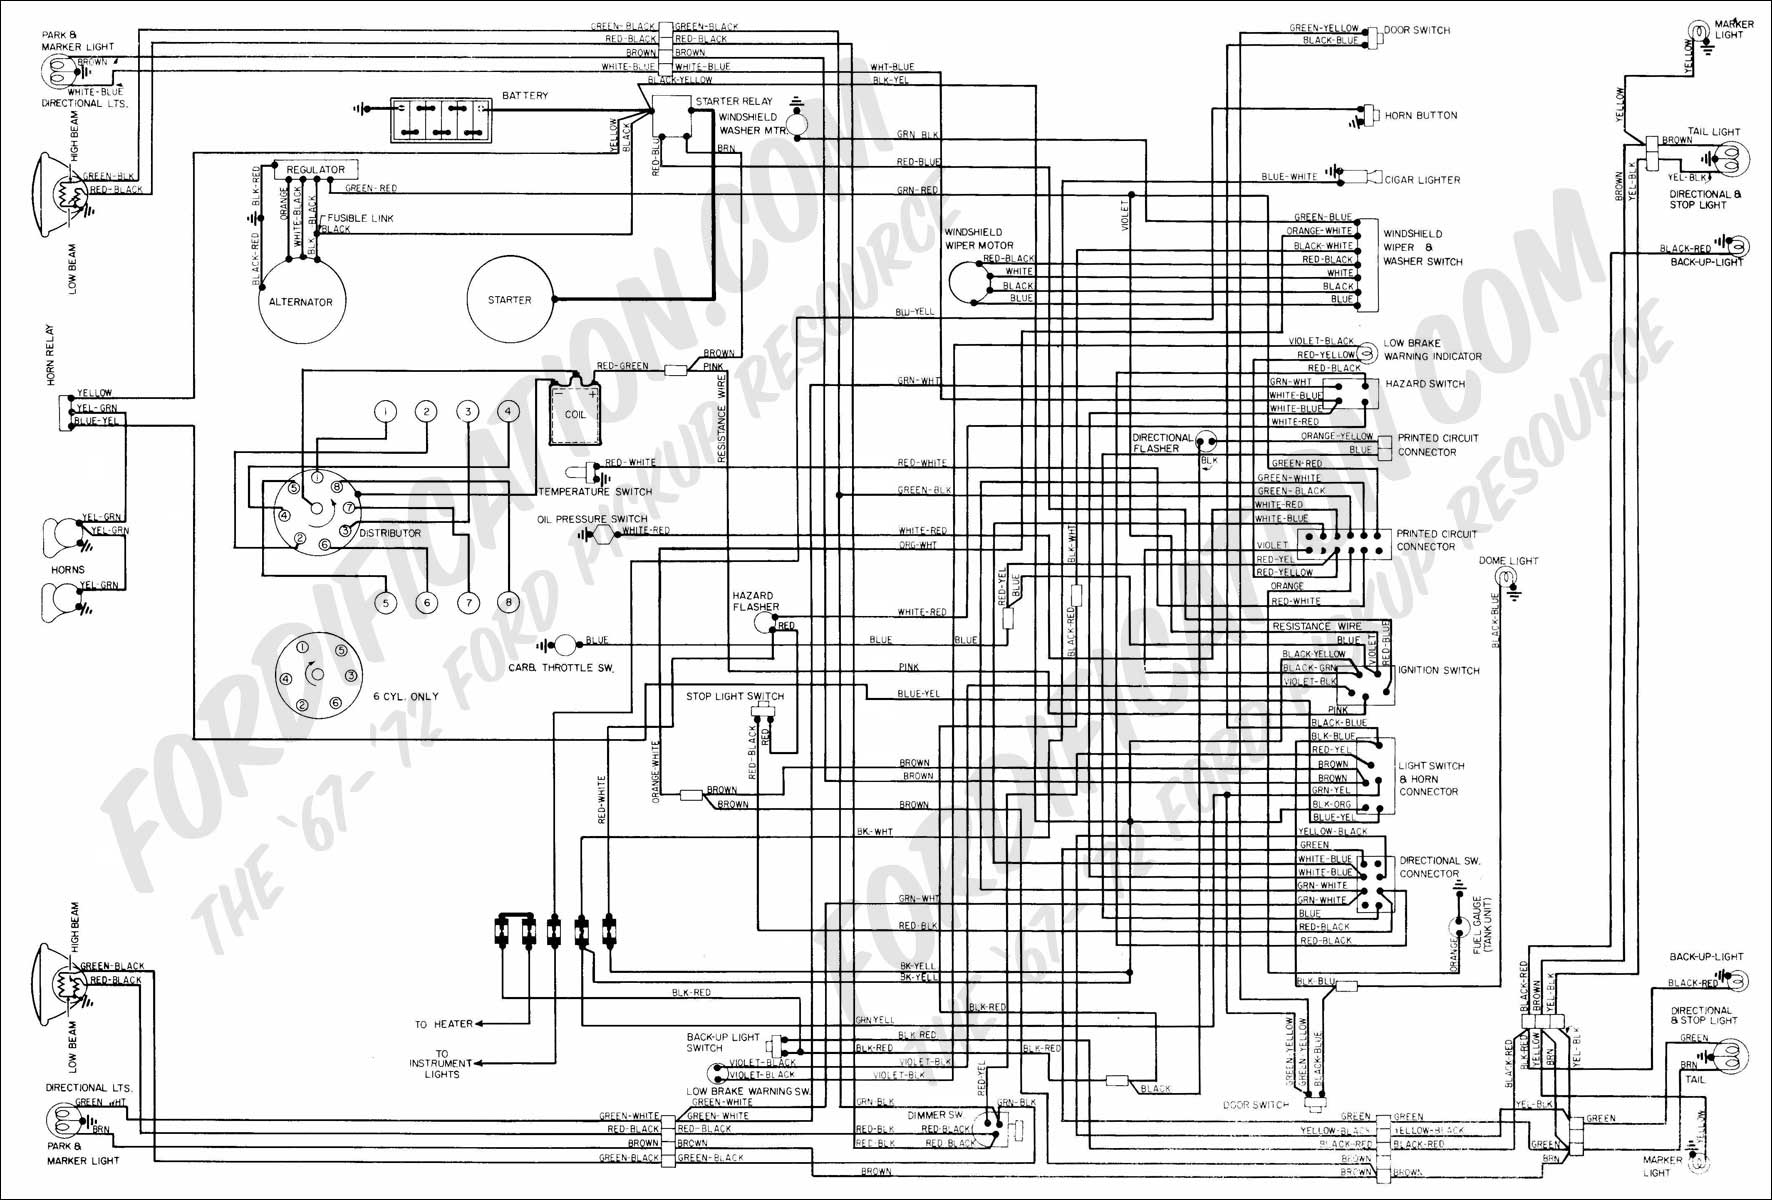 ford f series wiring diagram wiring data rh unroutine co 1975 Ford F-250 Wiring 1987 Ford F-250 Wiring Diagram